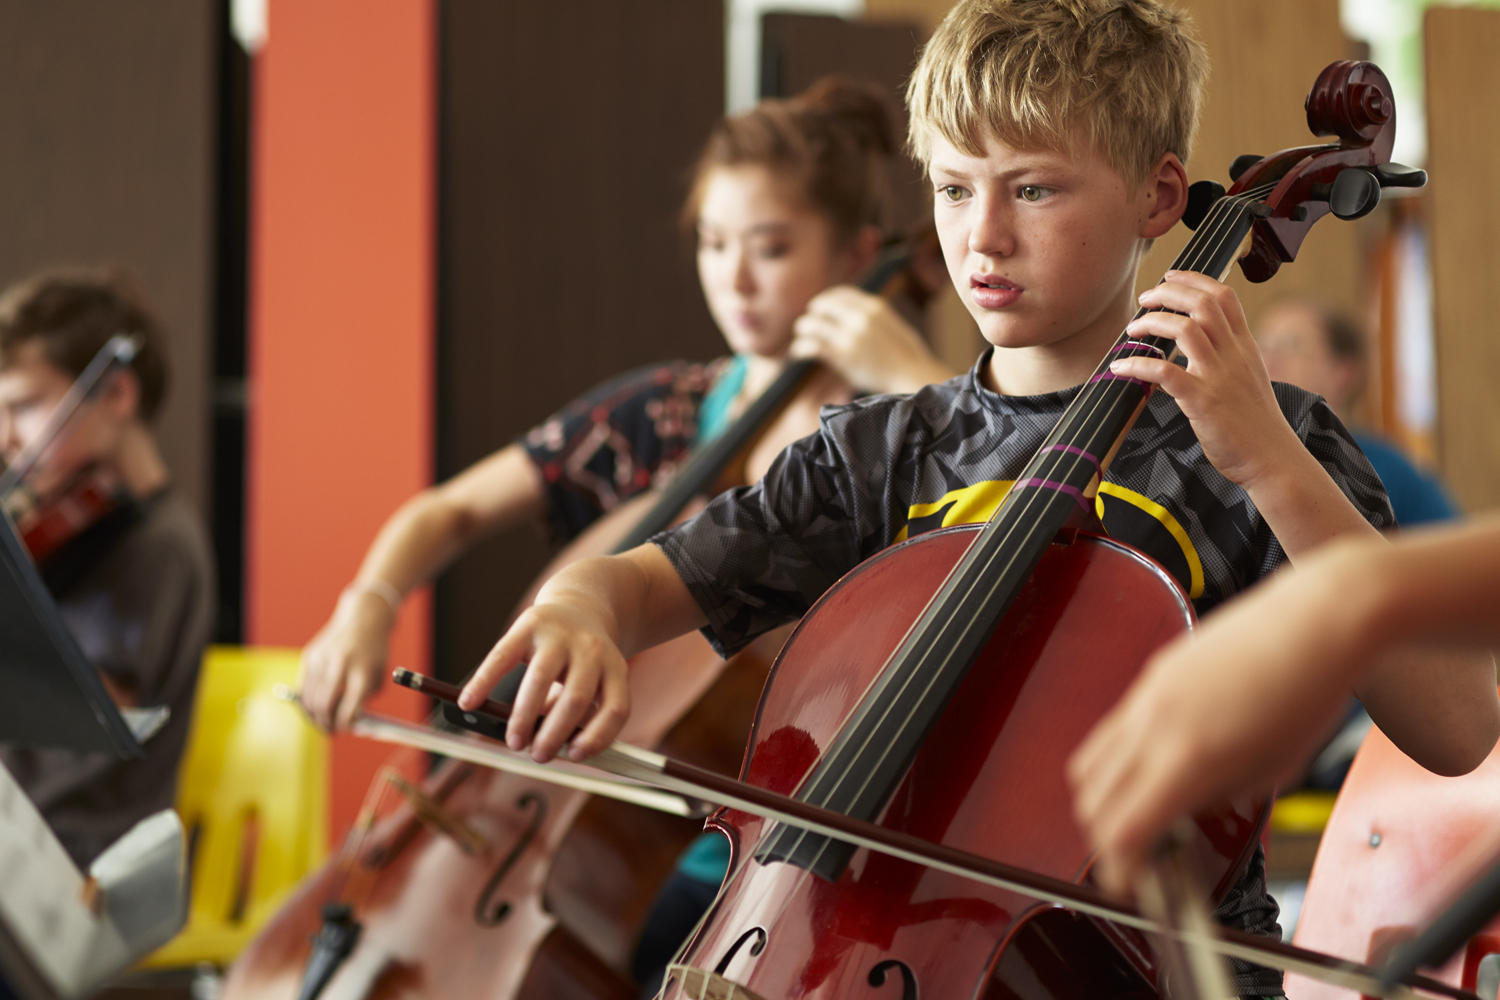 Music Matters! AFTER SCHOOL FINE ARTS INITIATIVE - El Sistema inspired